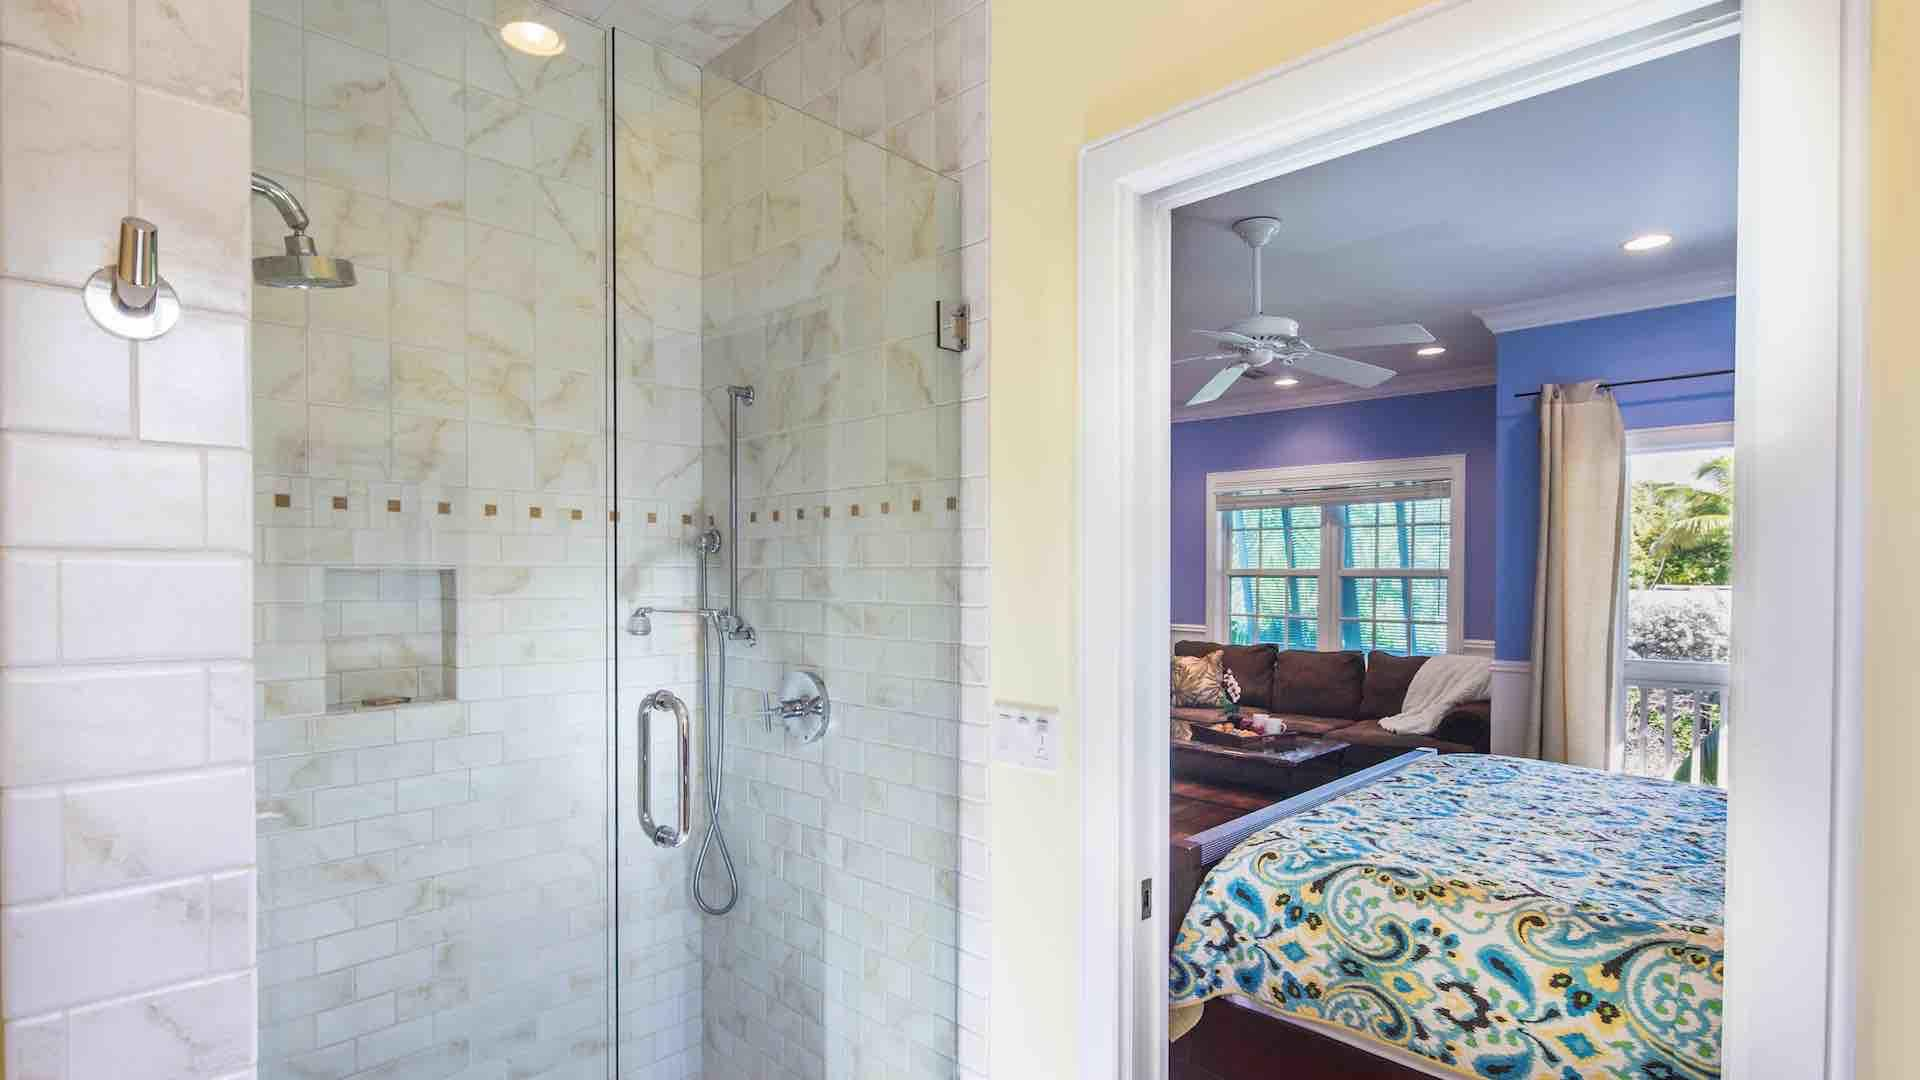 The second master bathroom has a spacious walk-in shower...